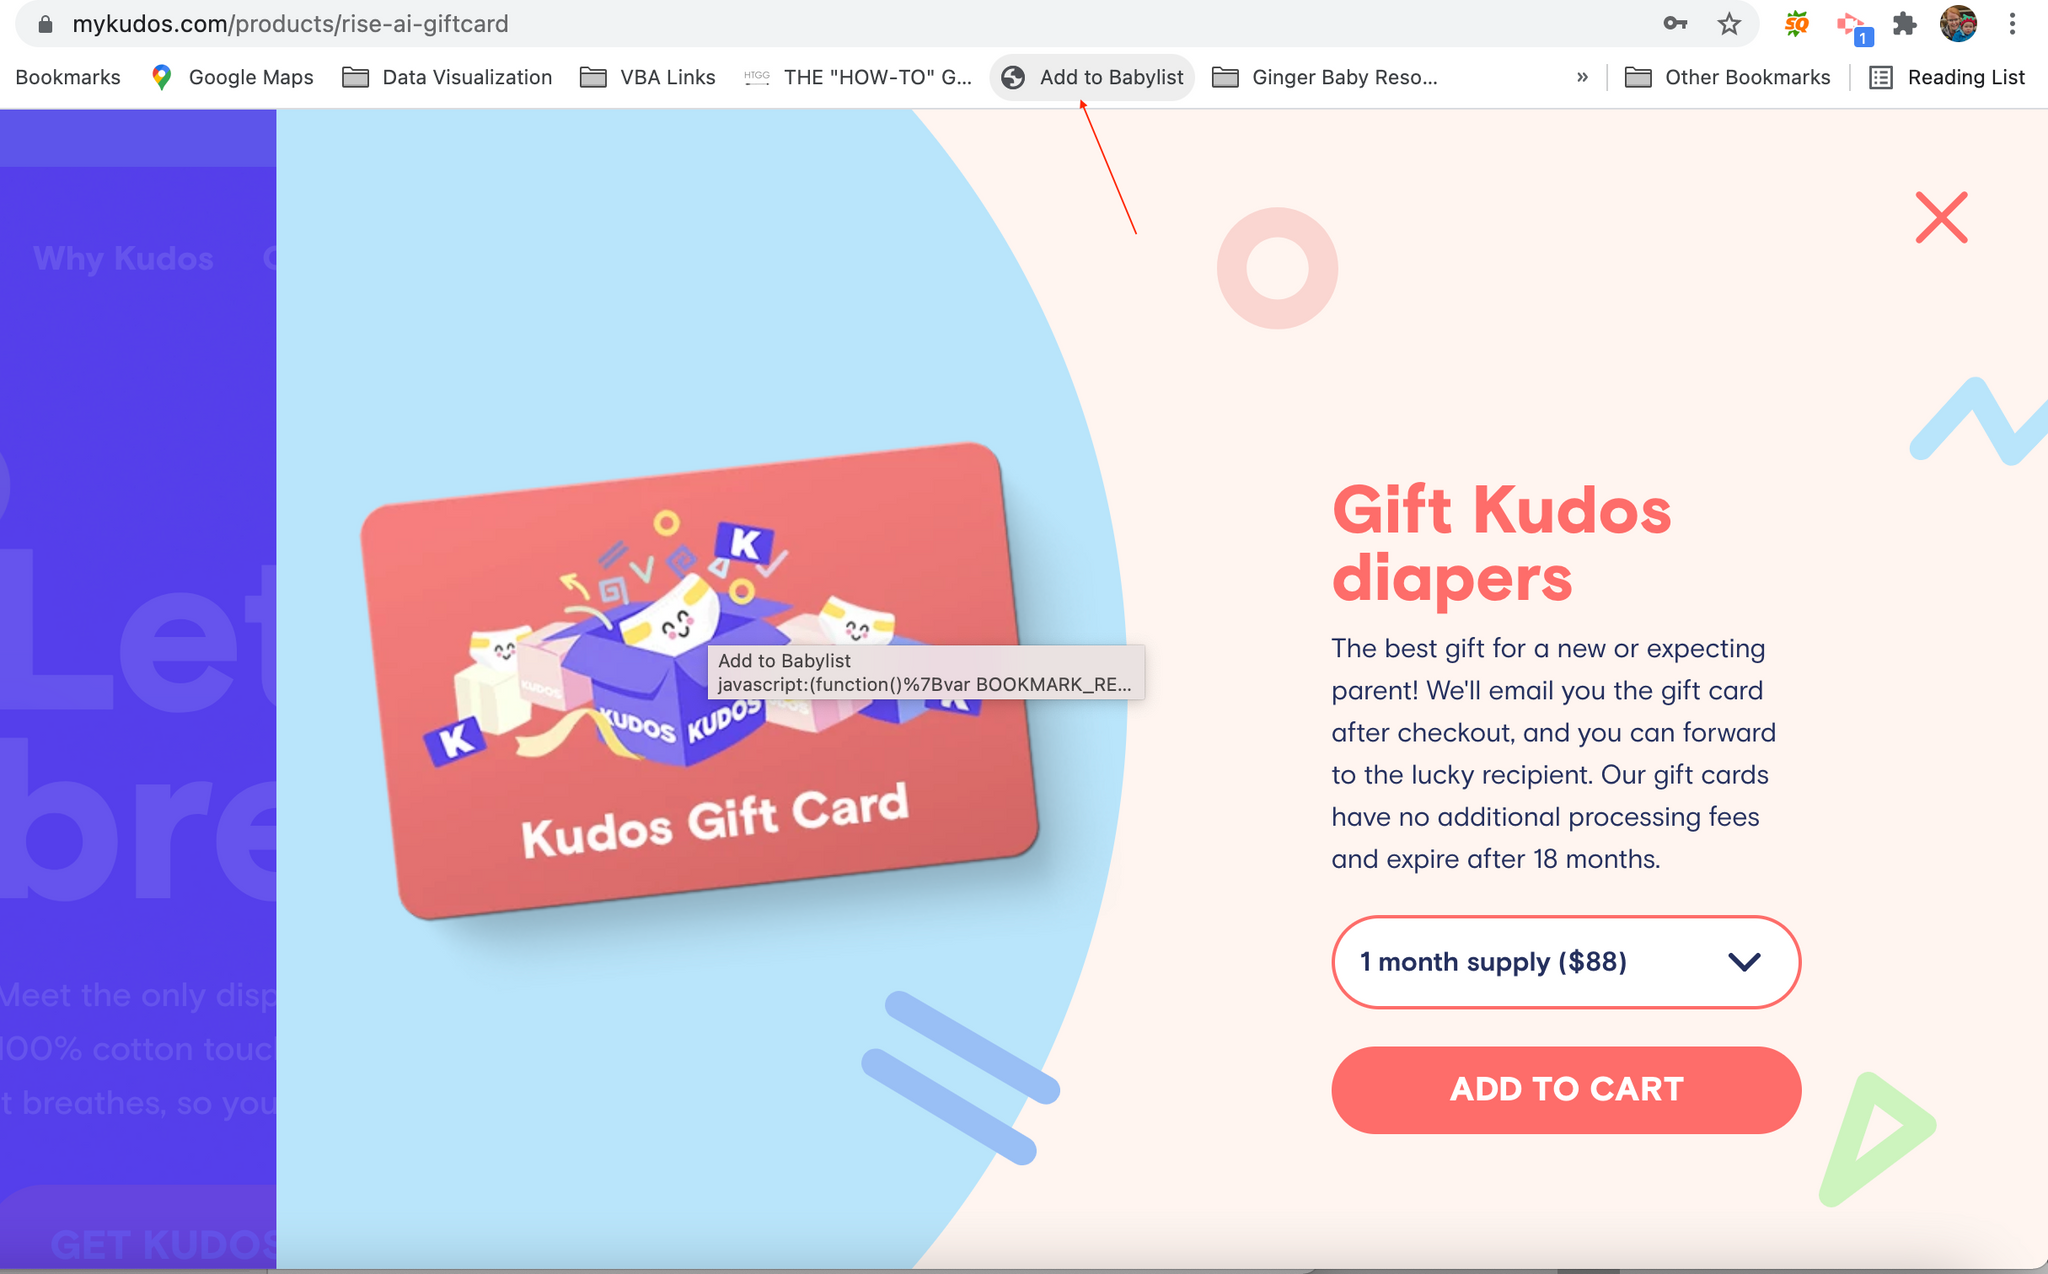 Clicking the add to babylist button to put Kudos diapers on baby registry